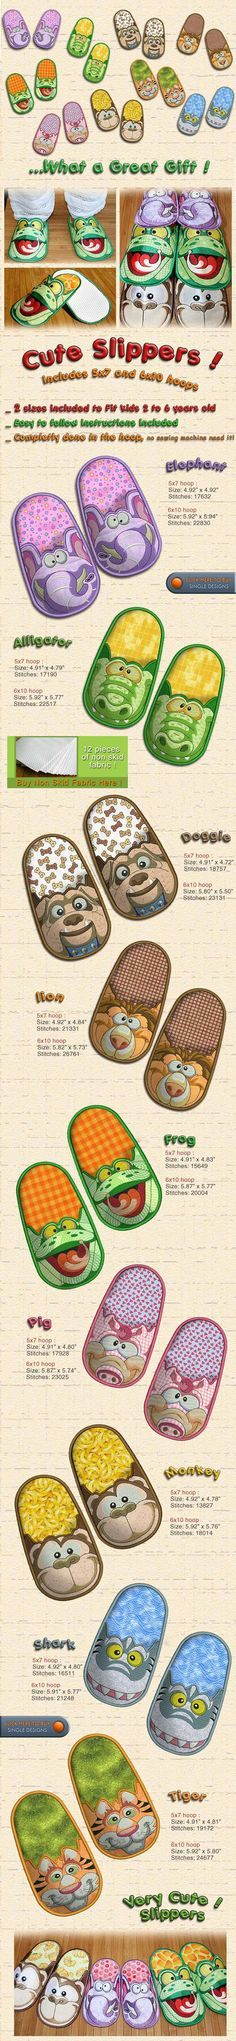 Cute Slippers - Embroidery Designs Free Embroidery Design Patterns Applique